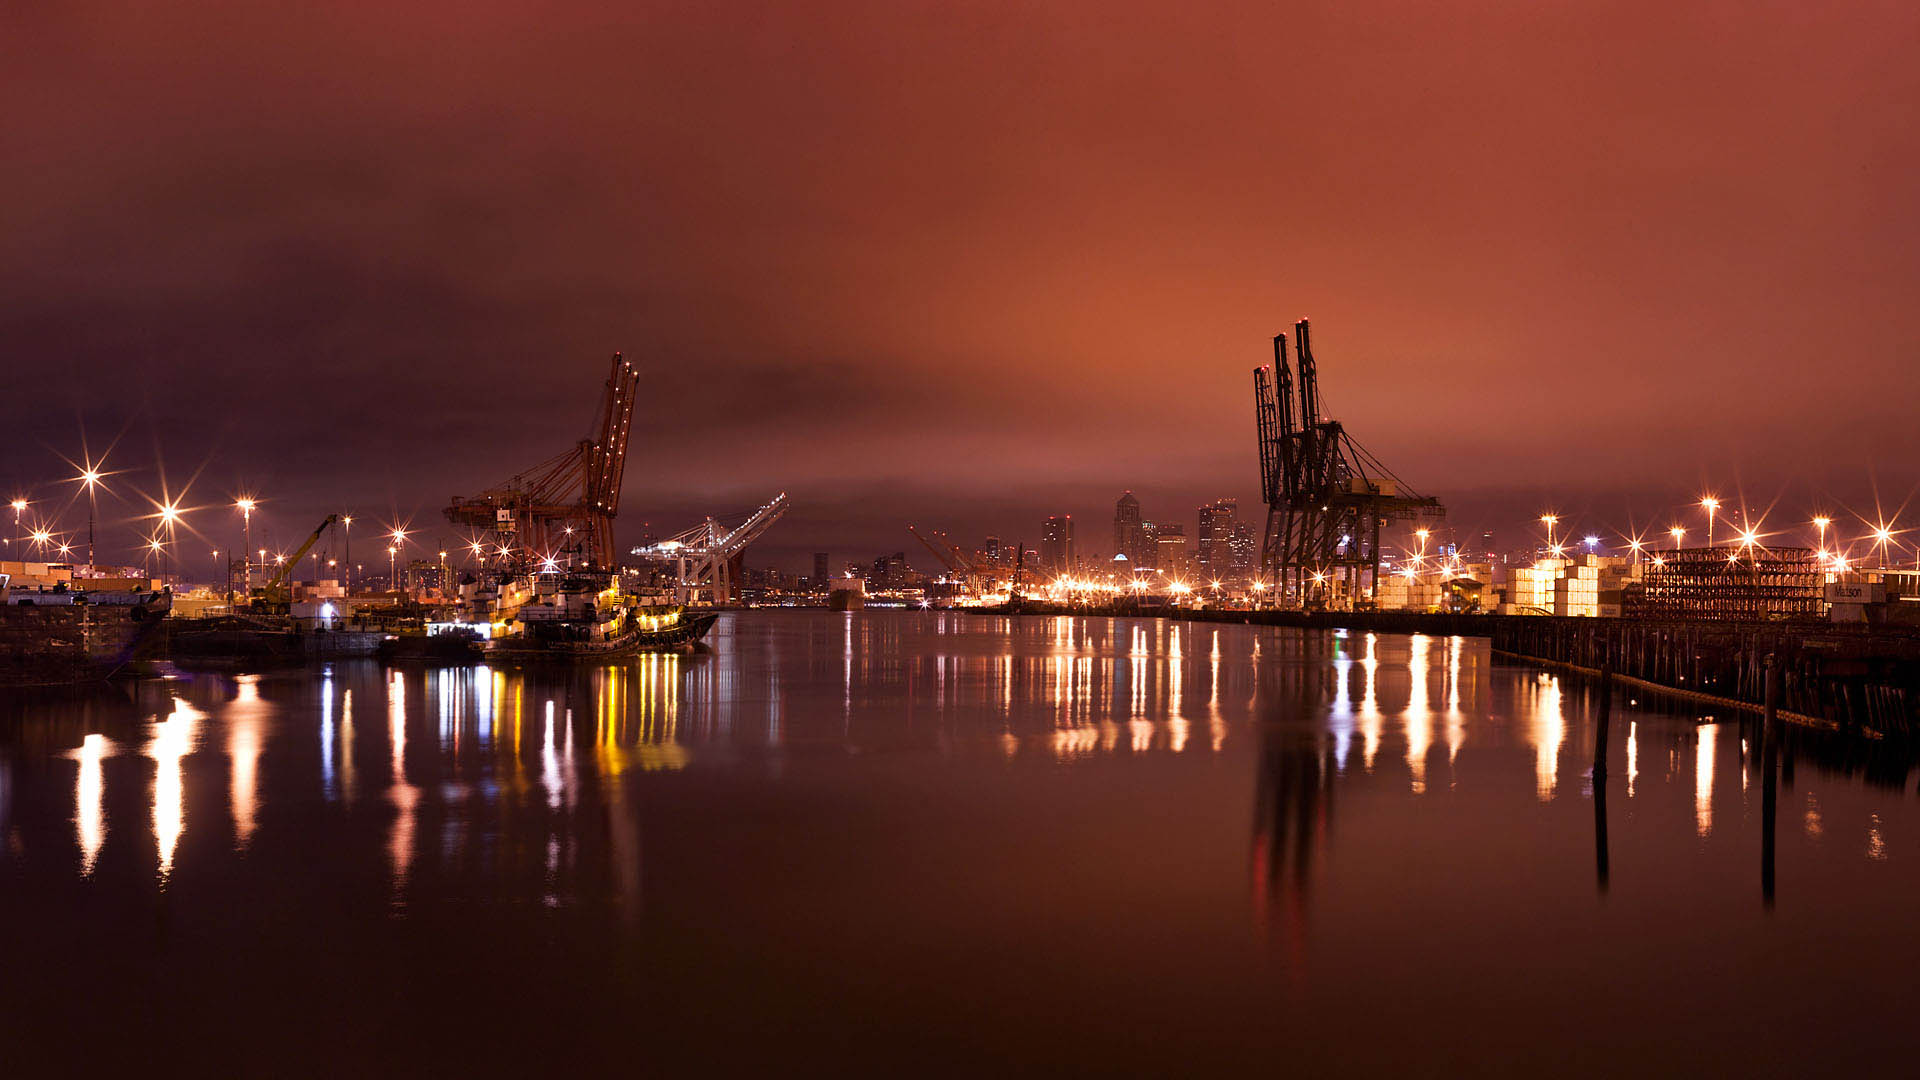 shipyard-at-night-wallpaper-4764.jpg